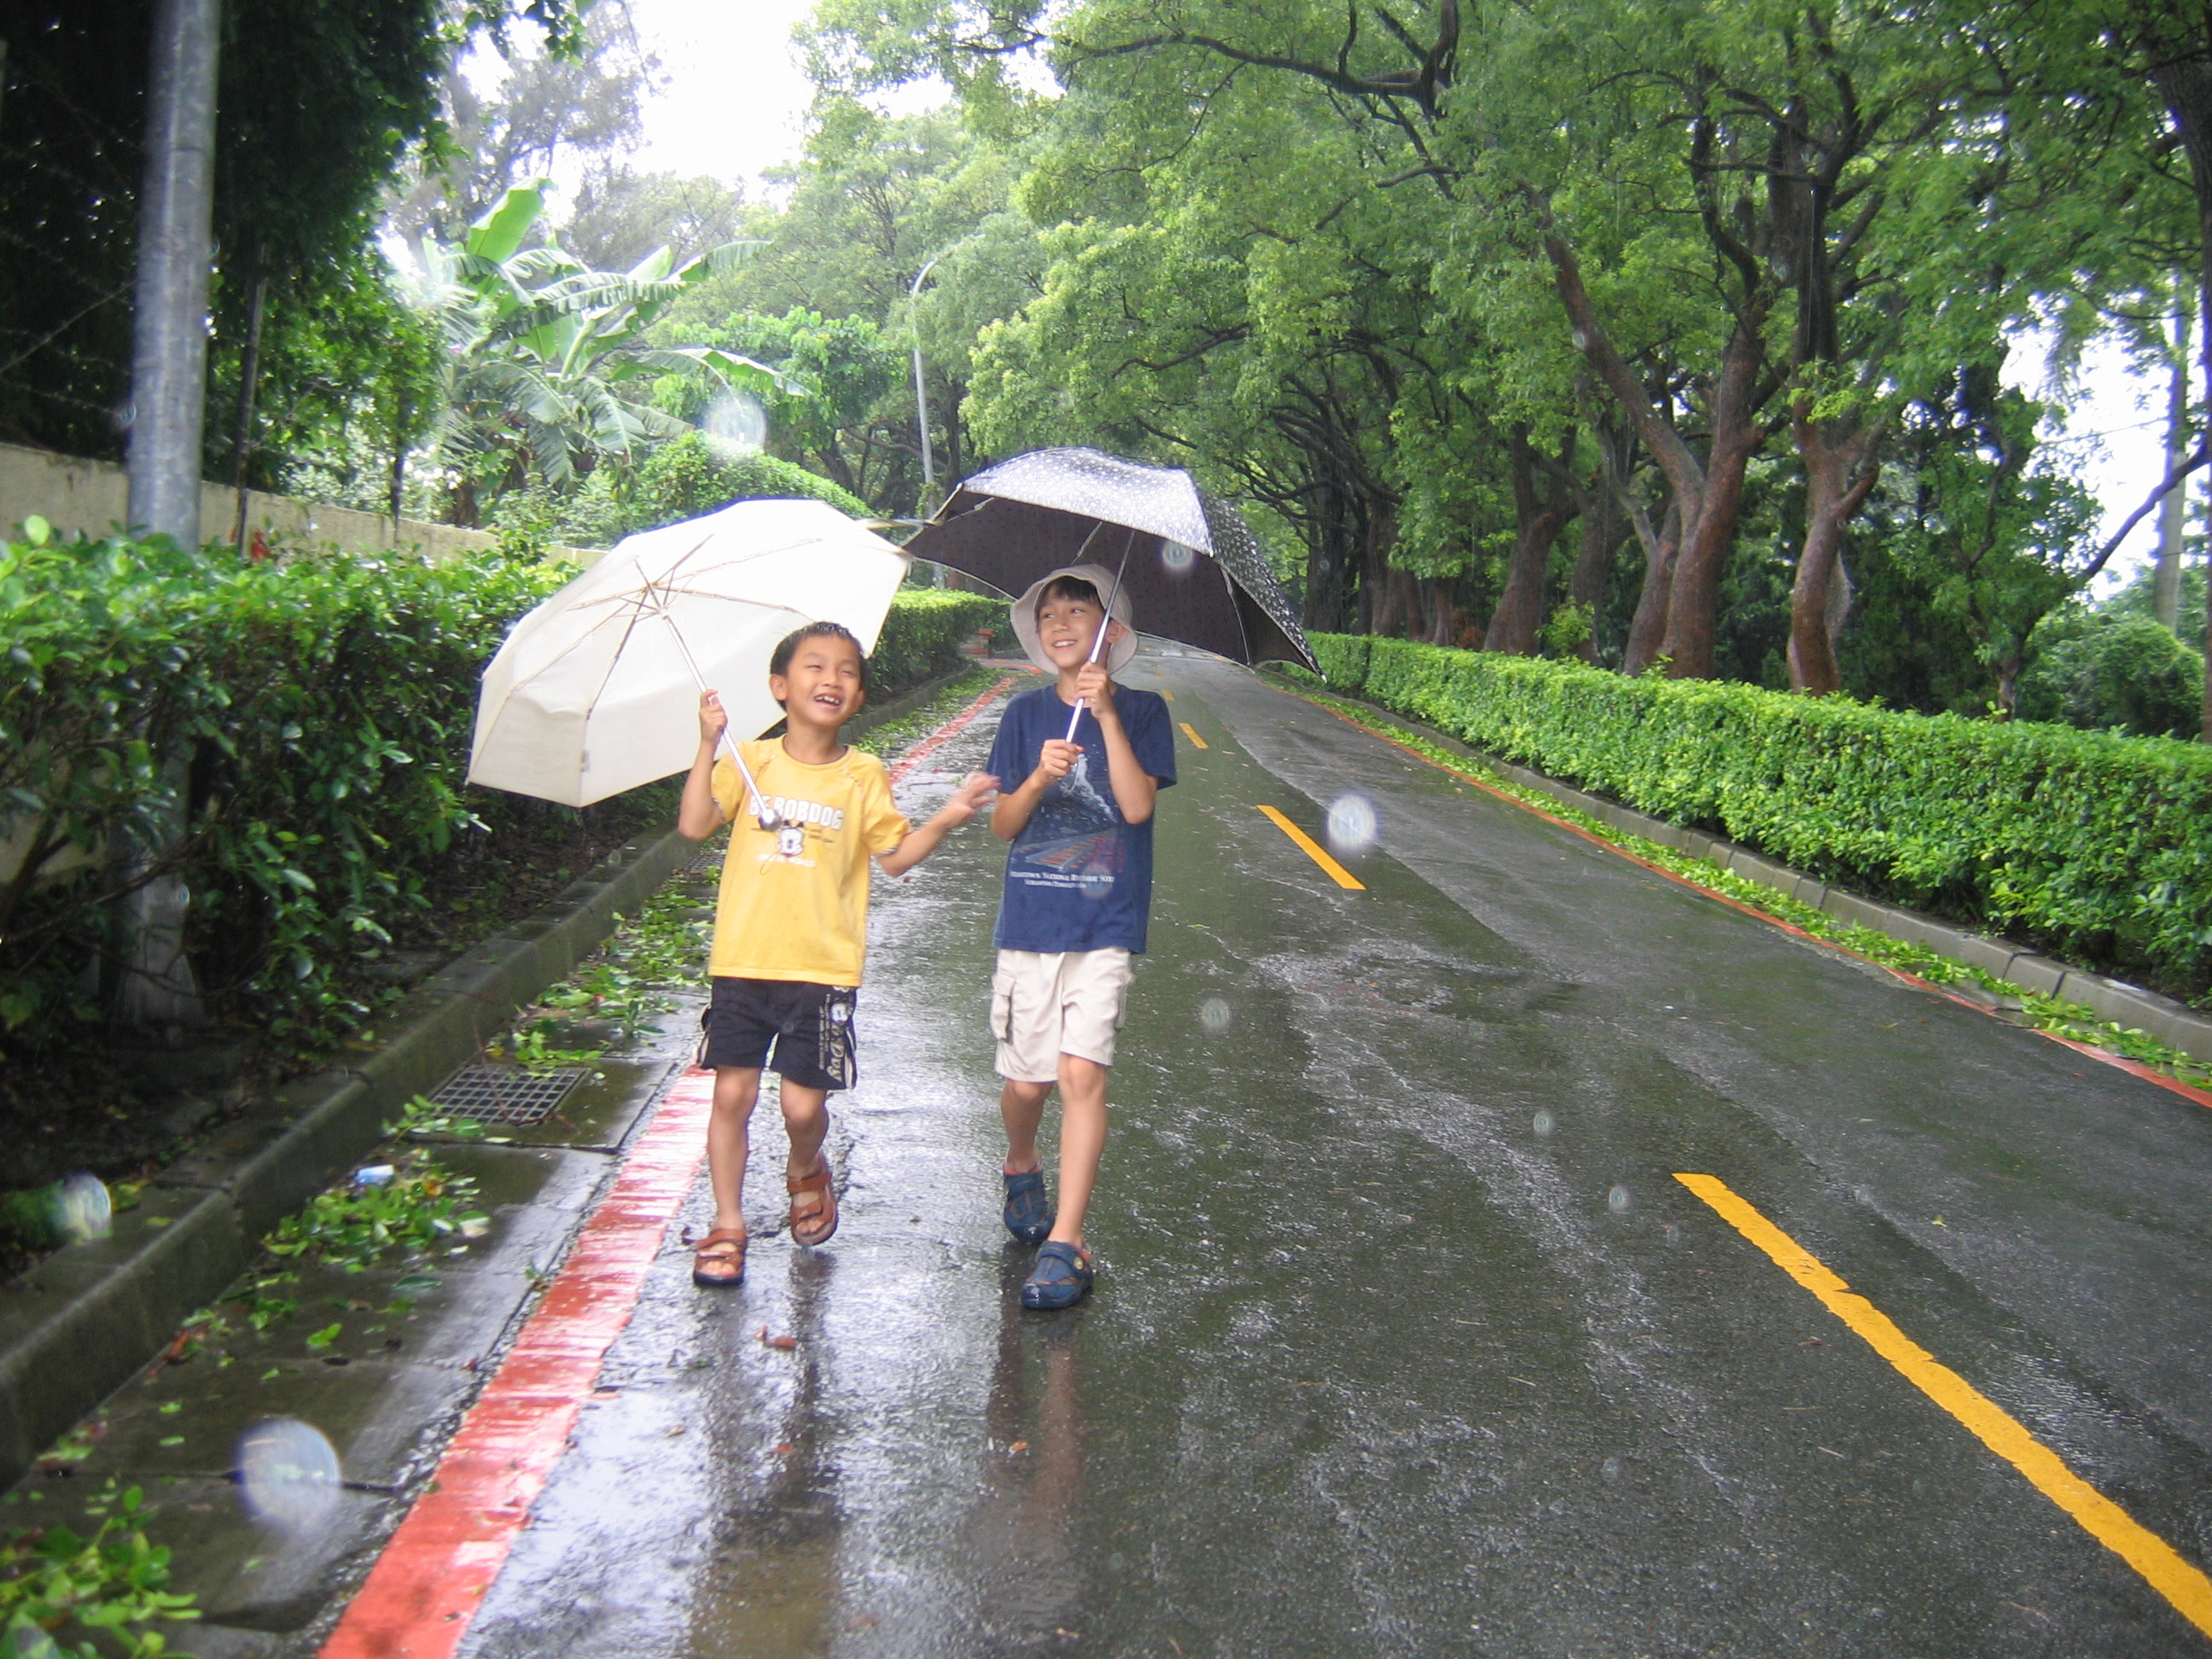 Some pictures from june 2007 in taiwan